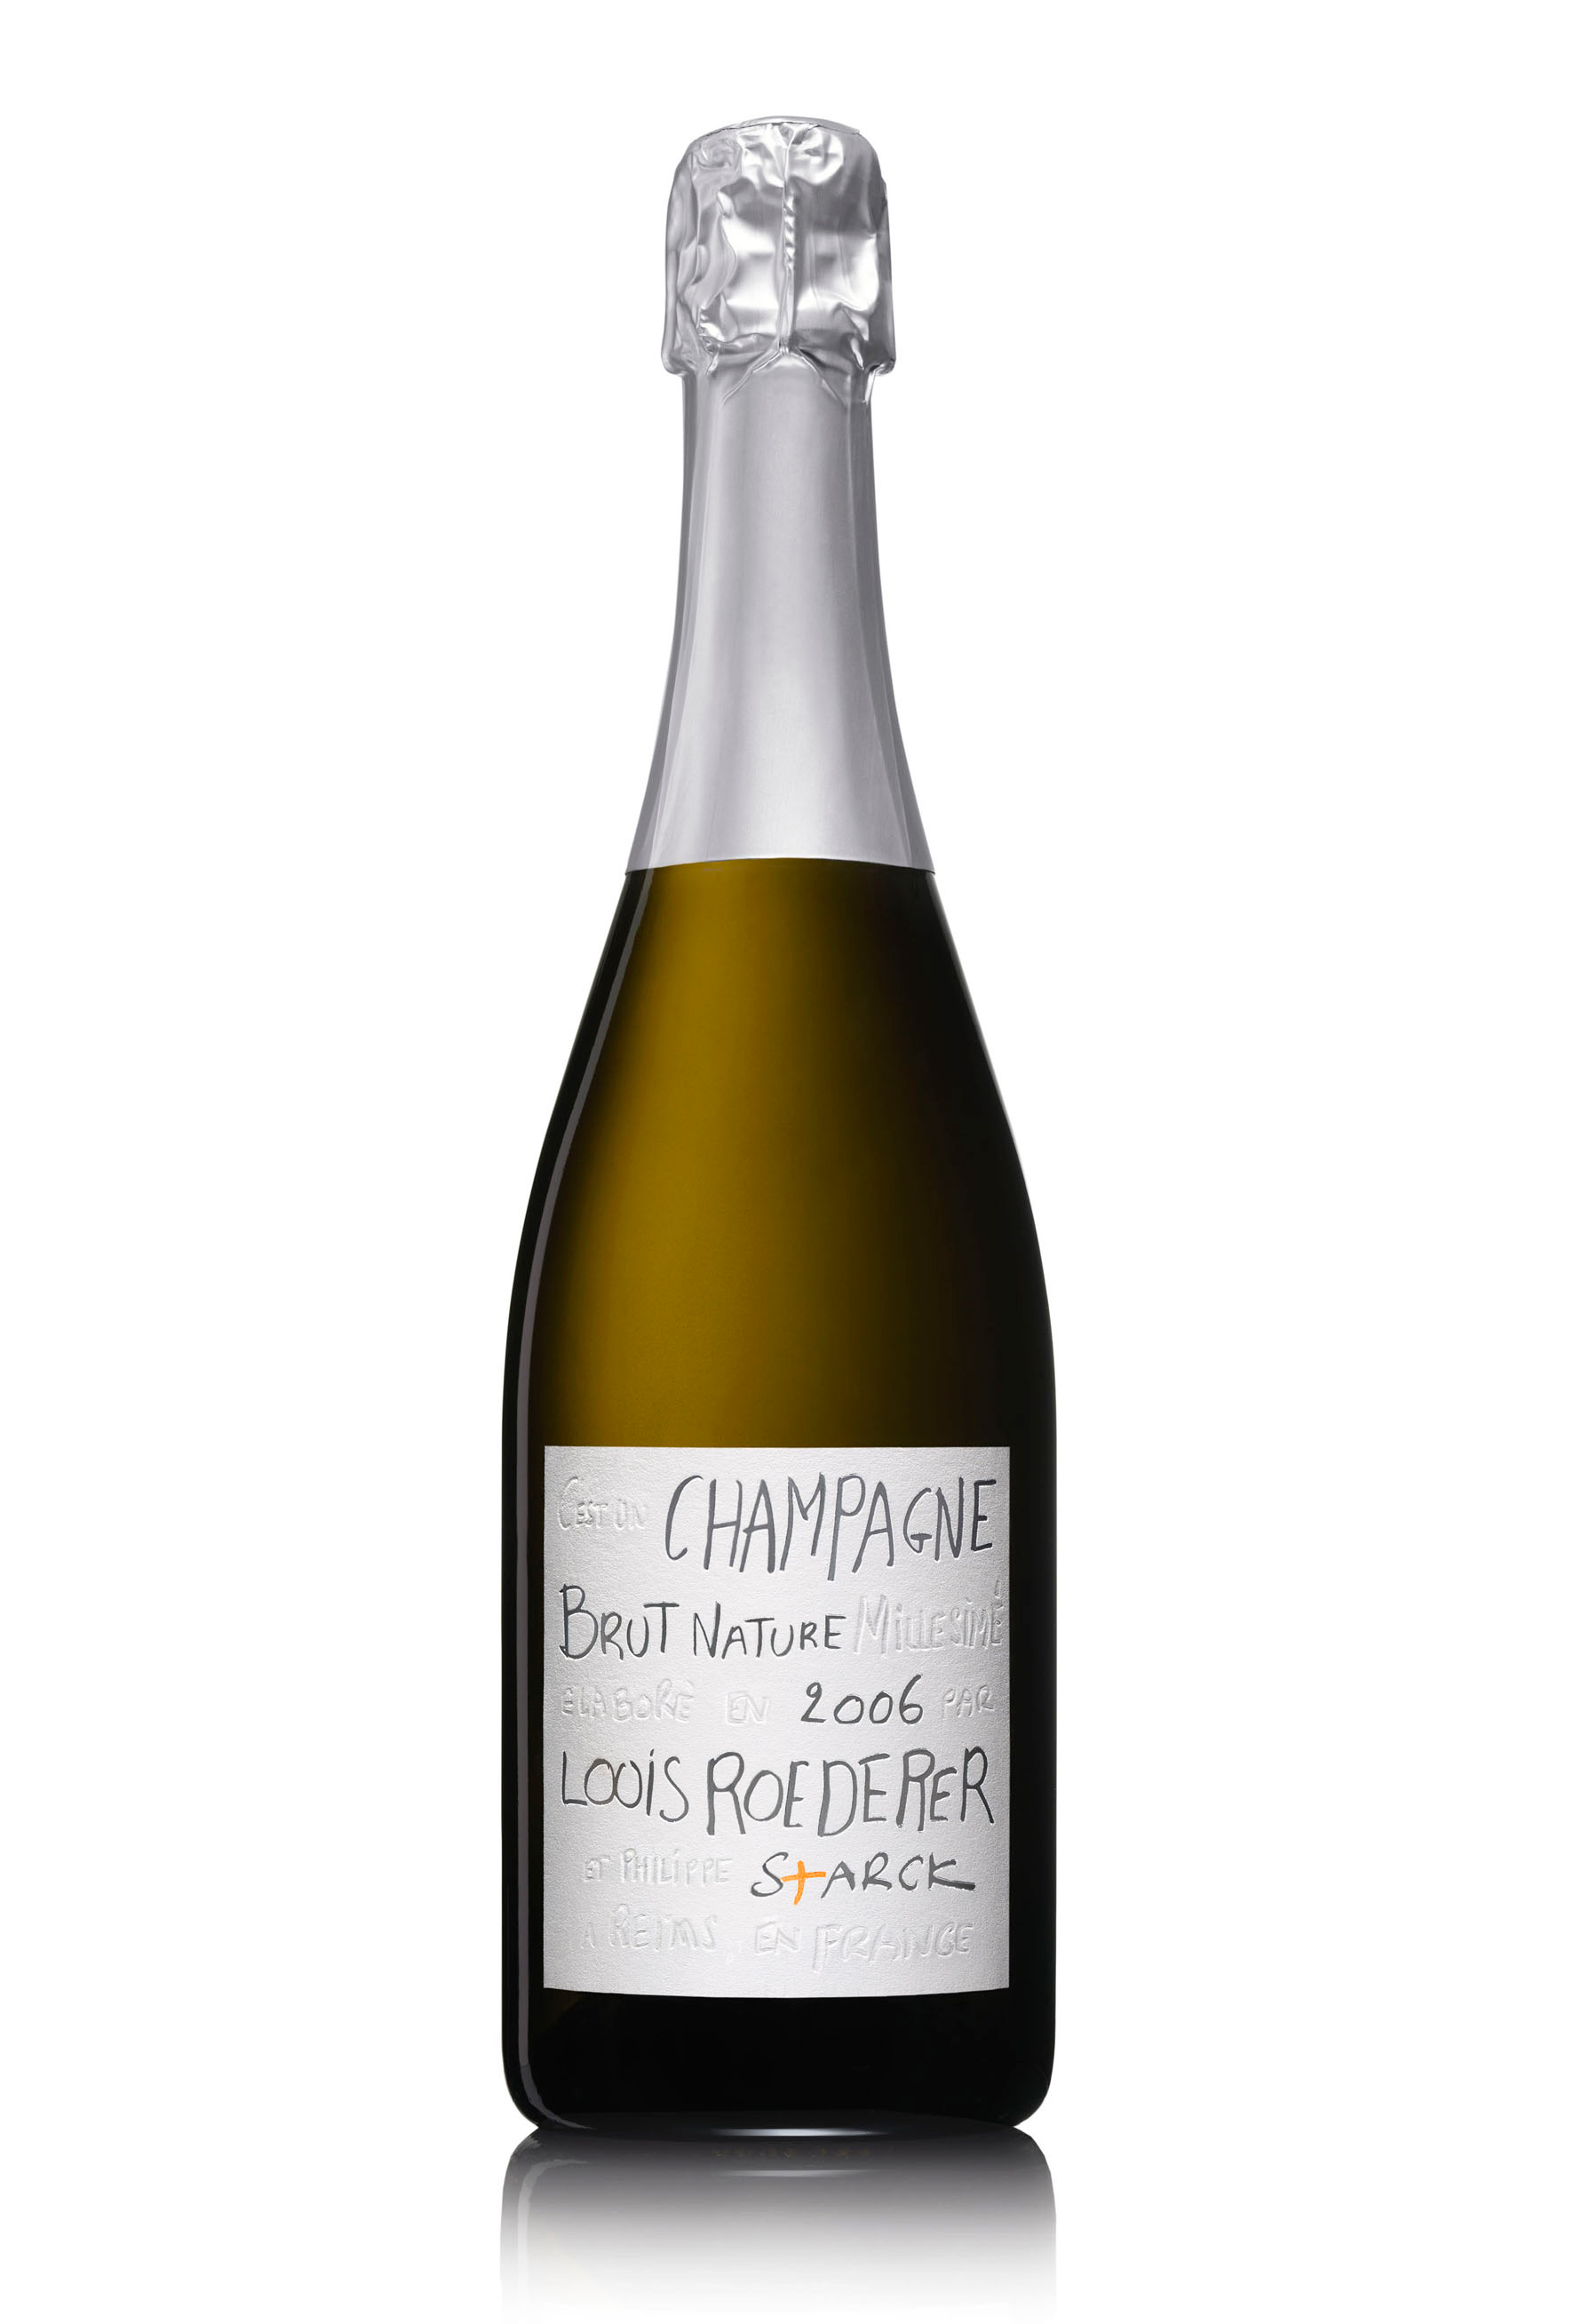 Louis Roederer Brut Nature 2006 by Philippe Starck